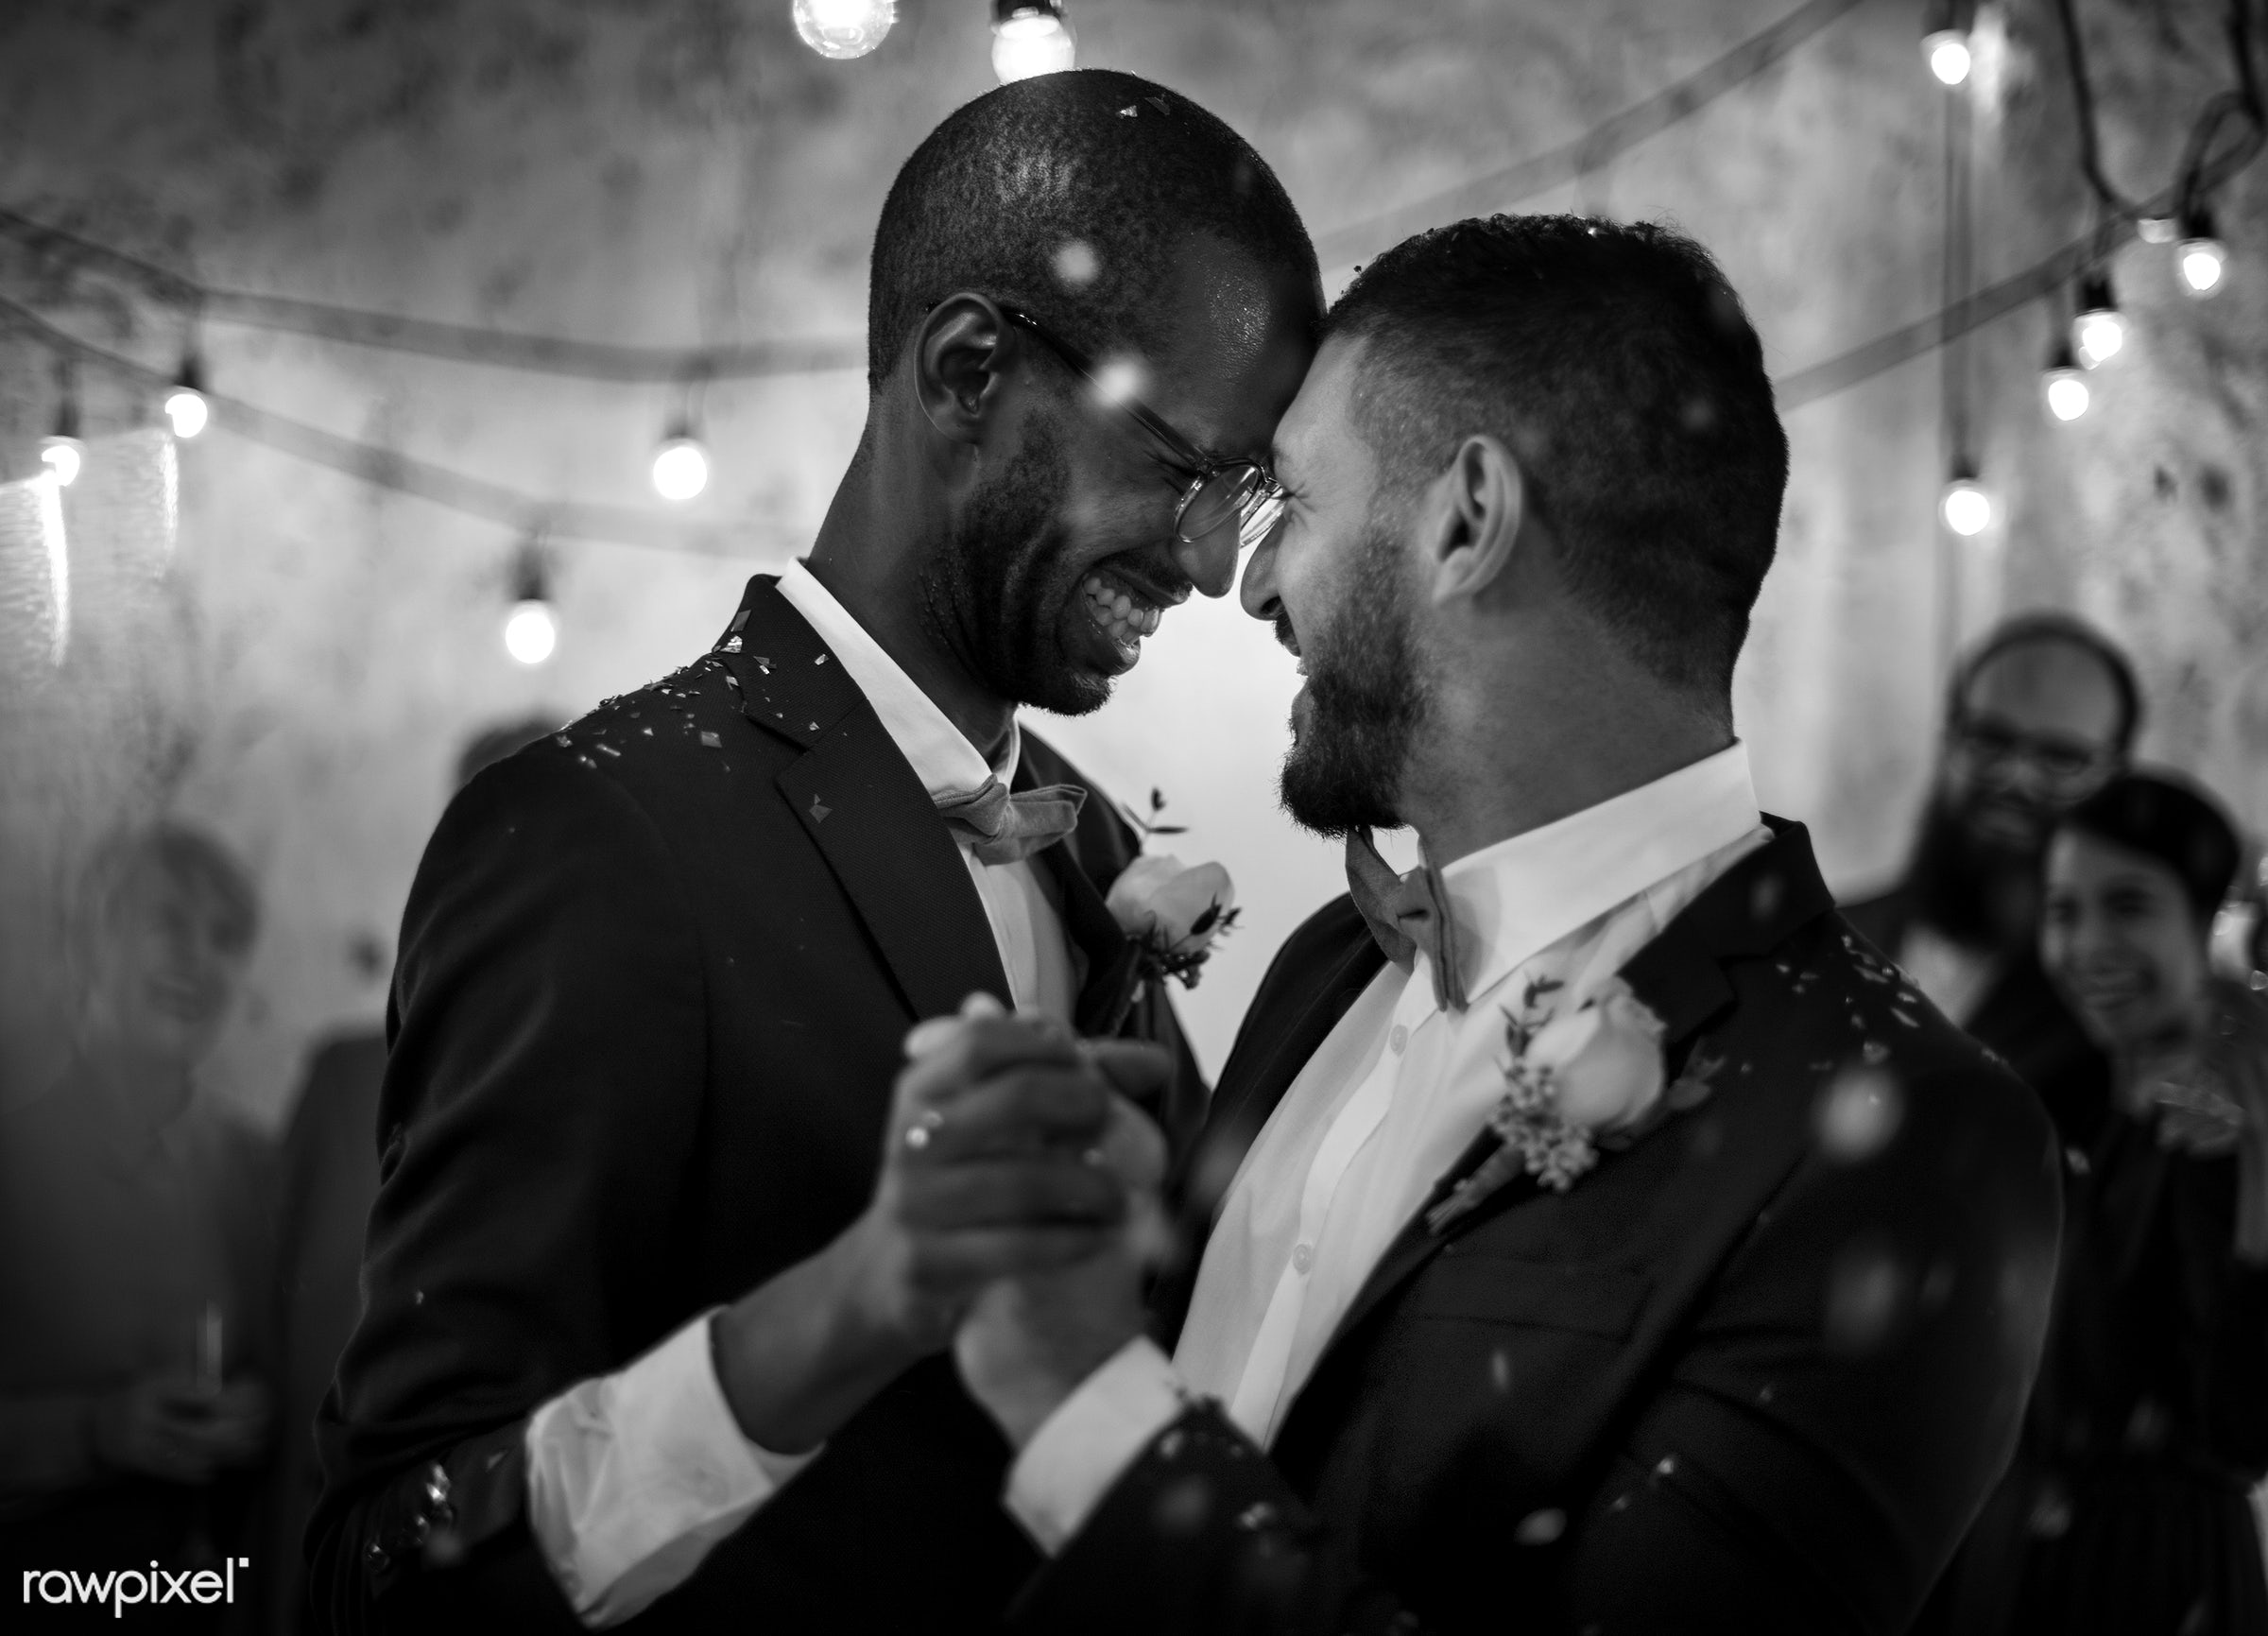 Gay couple dancing on wedding day - wedding, affection, black, celebration, cheerful, couple, dance, dancing, diverse,...